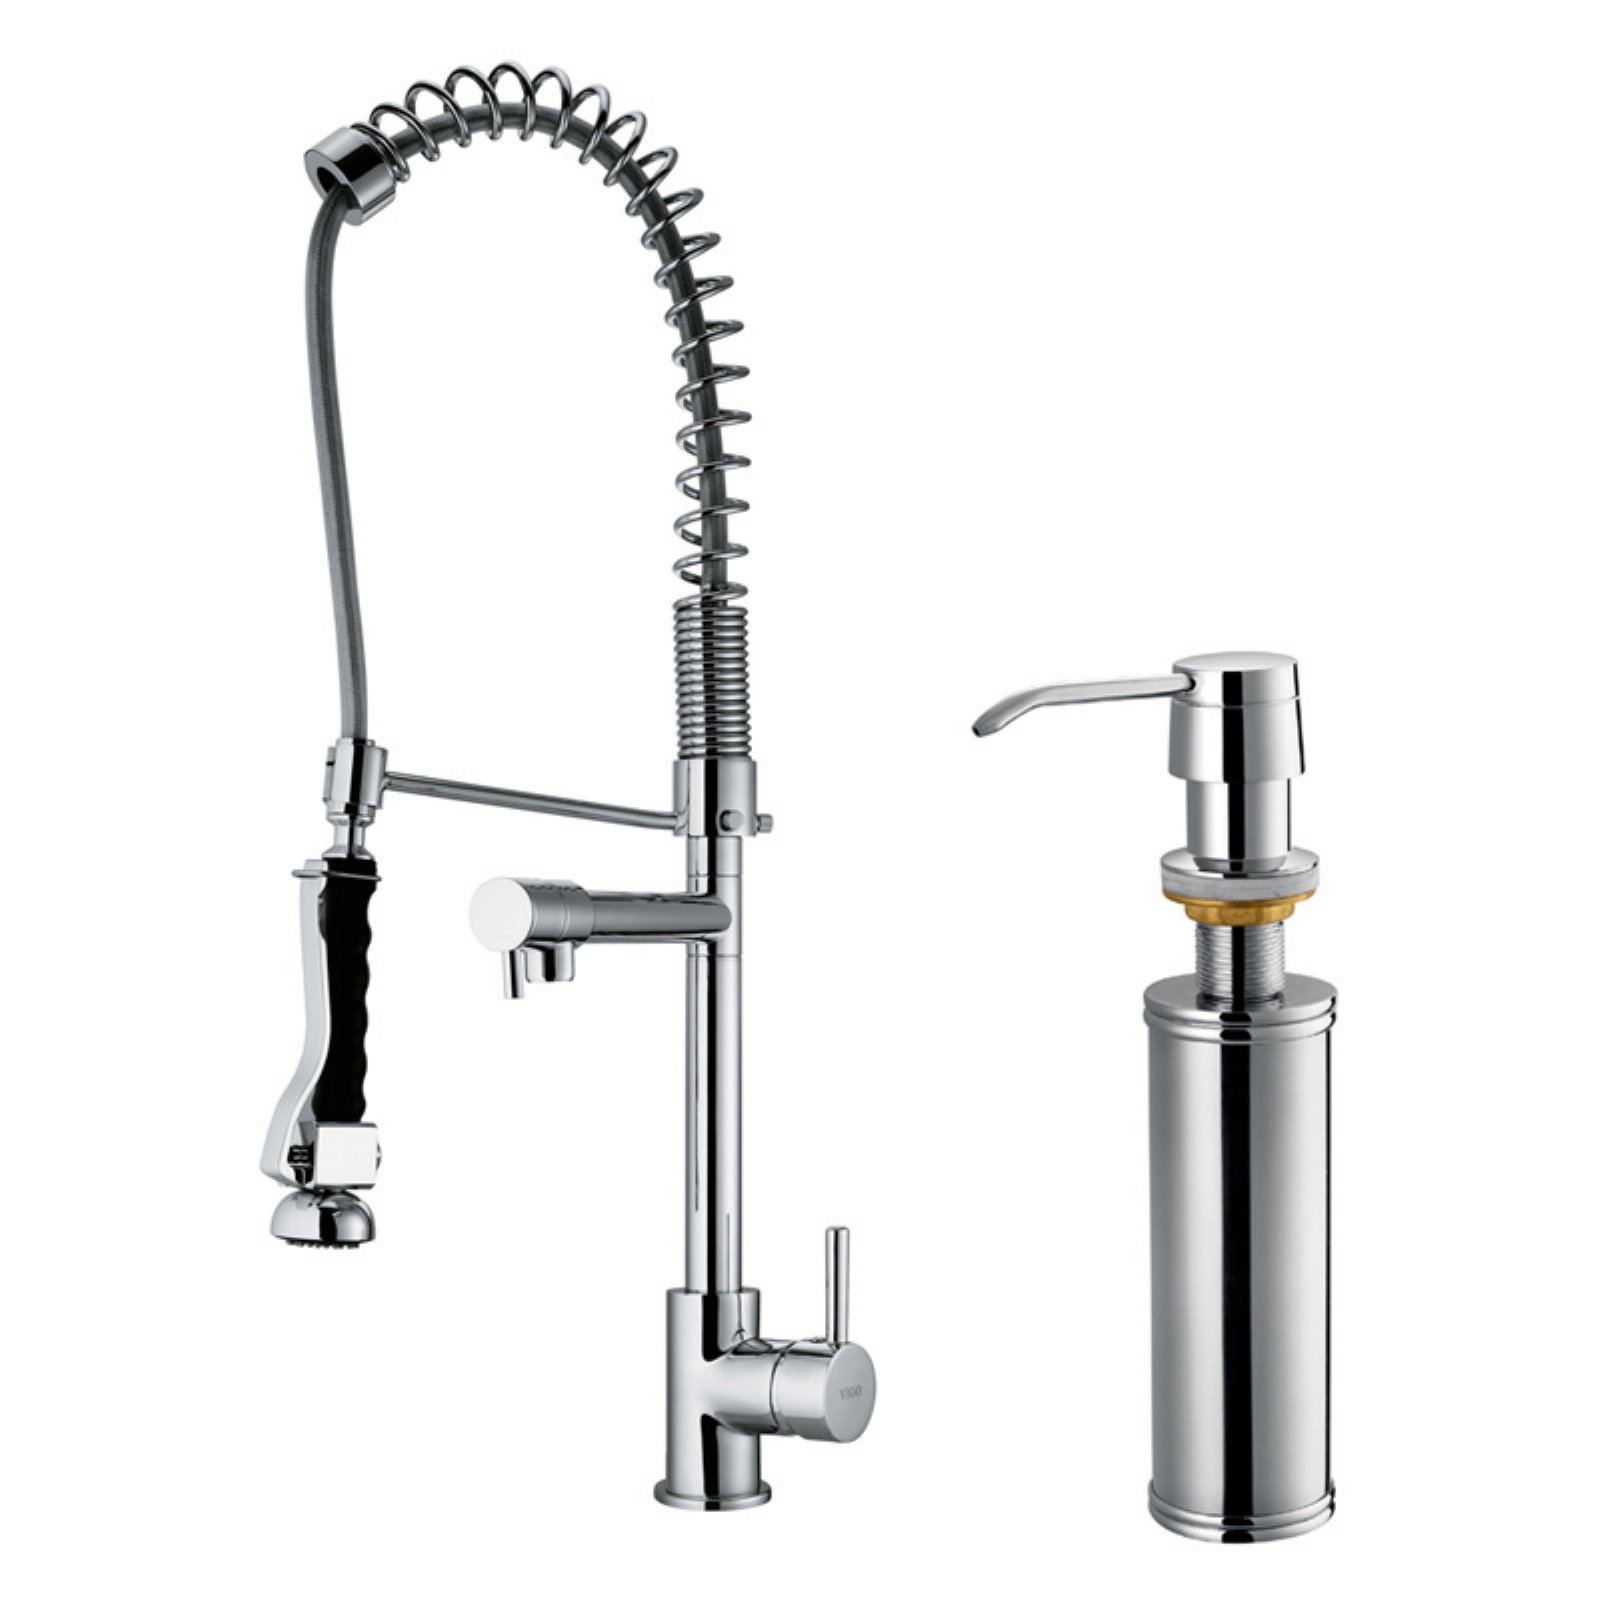 Vigo Pull-Out Spray Kitchen Faucet with Soap Dispenser, Stainless Steel